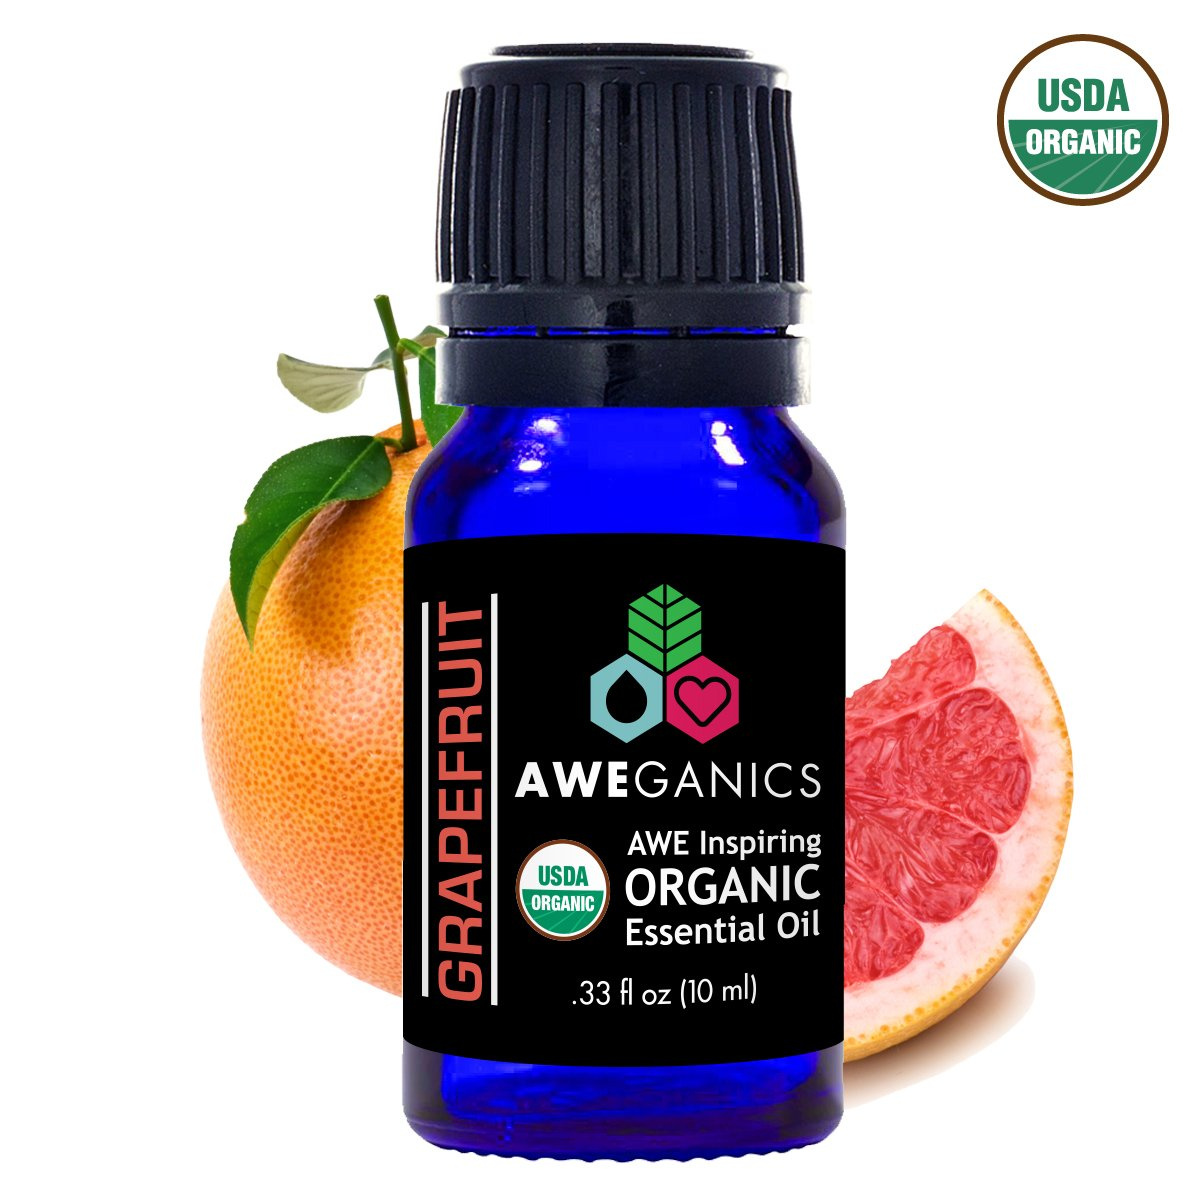 Grapefruit Essential Oil, 10 ml, USDA Organic, 100% Pure&Natural Therapeutic Grade - Aweganics (10 ml) - Pop Fashion